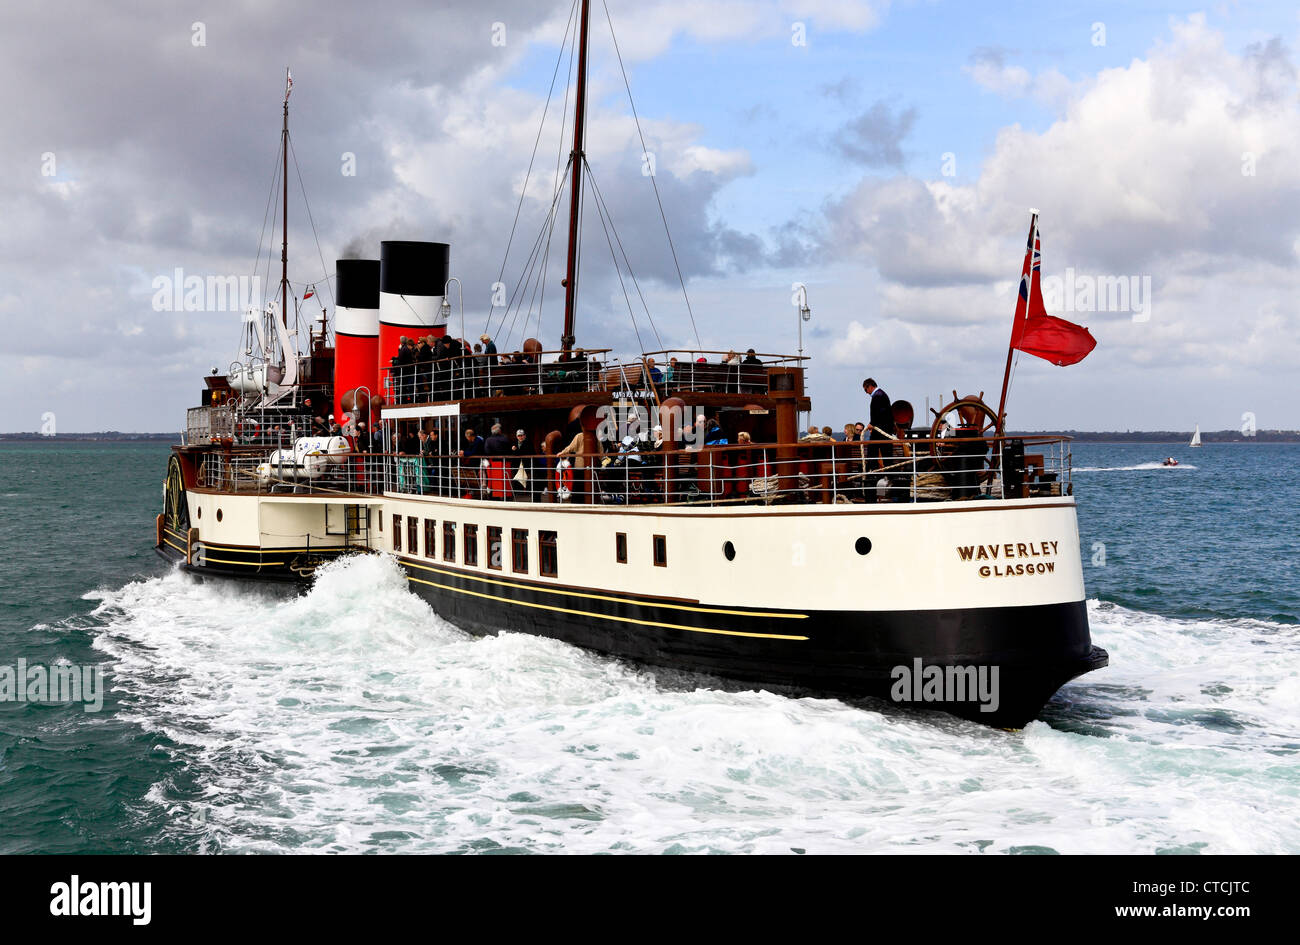 4169. The Waverley Paddle-Steamer leaving Yarmouth Pier, Isle of Wight, UK - Stock Image